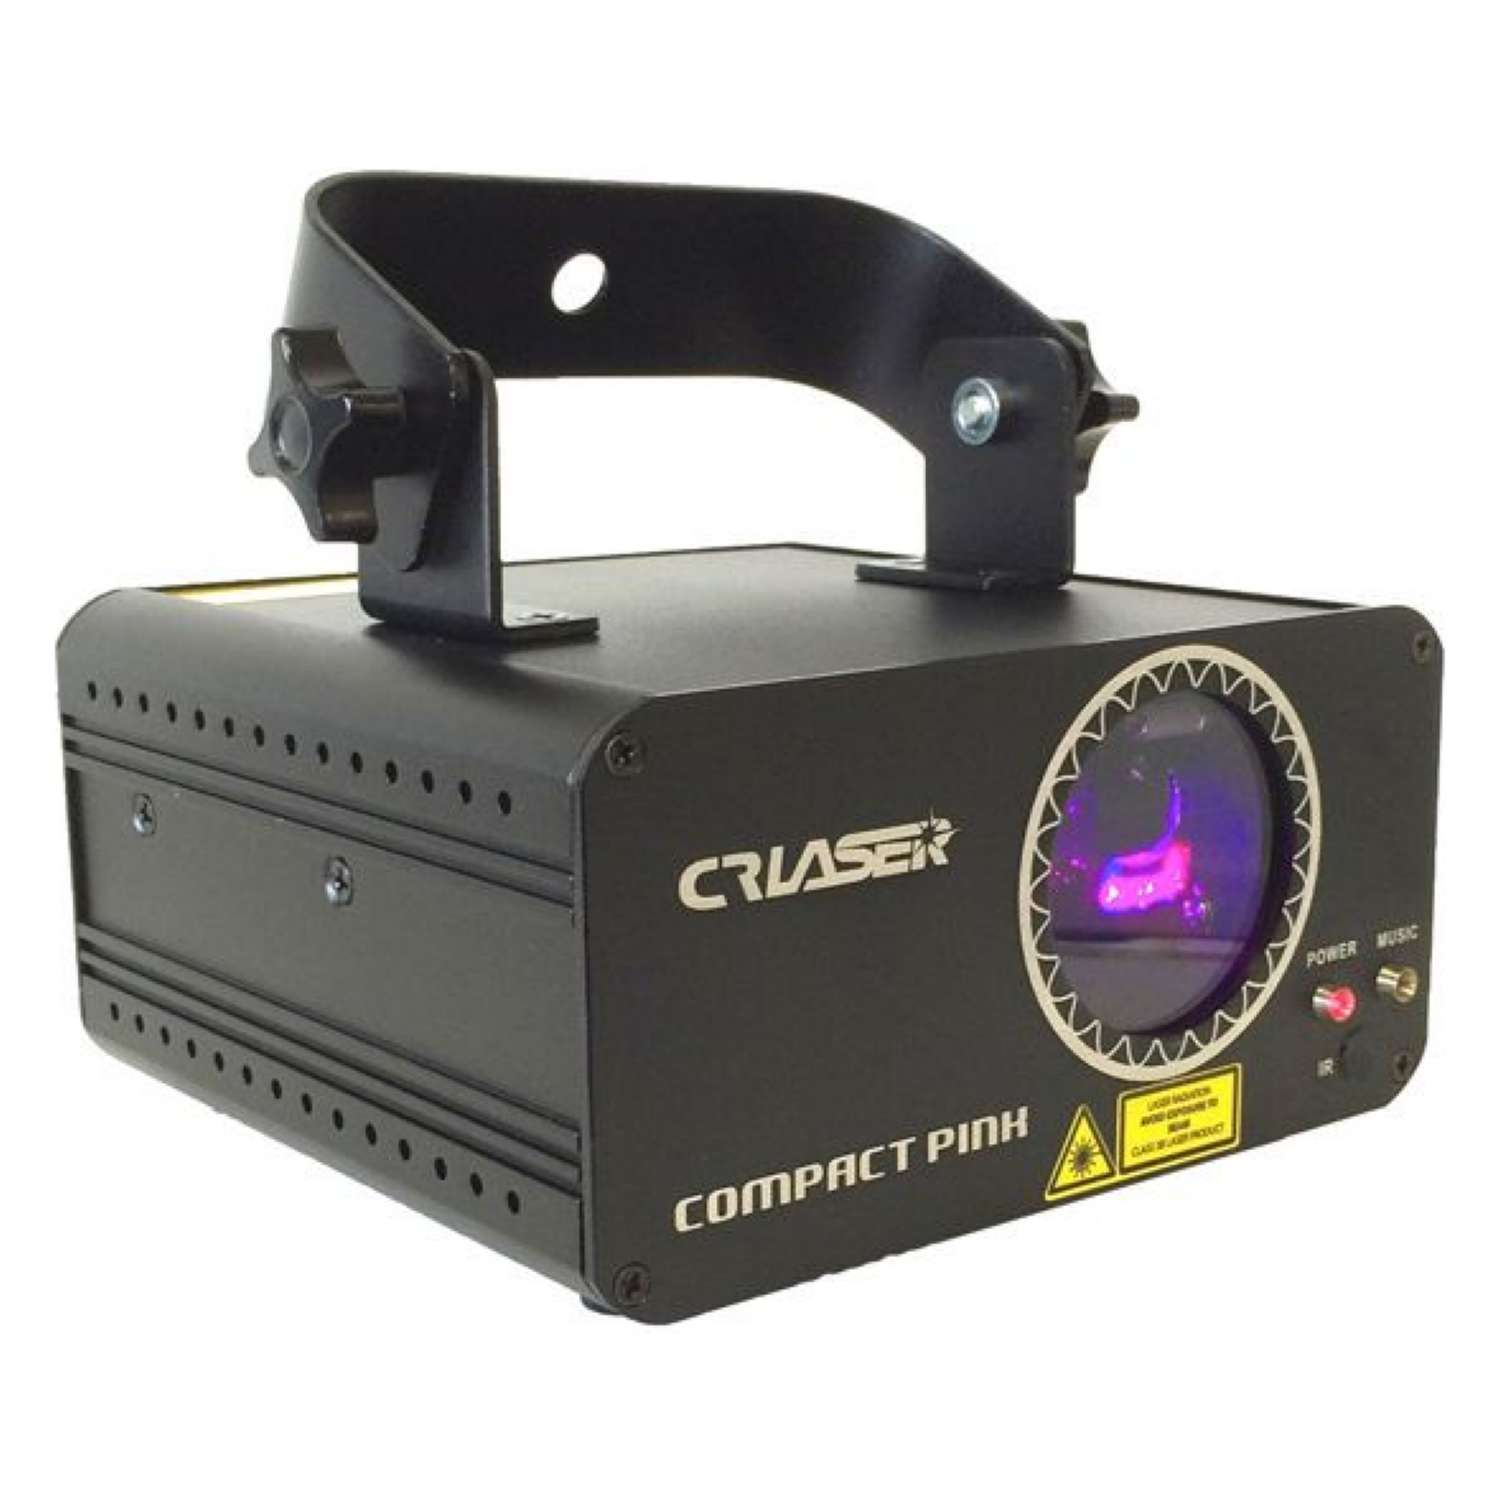 CR Laser Compact Pink 180mW Pink Laser With Remote 1